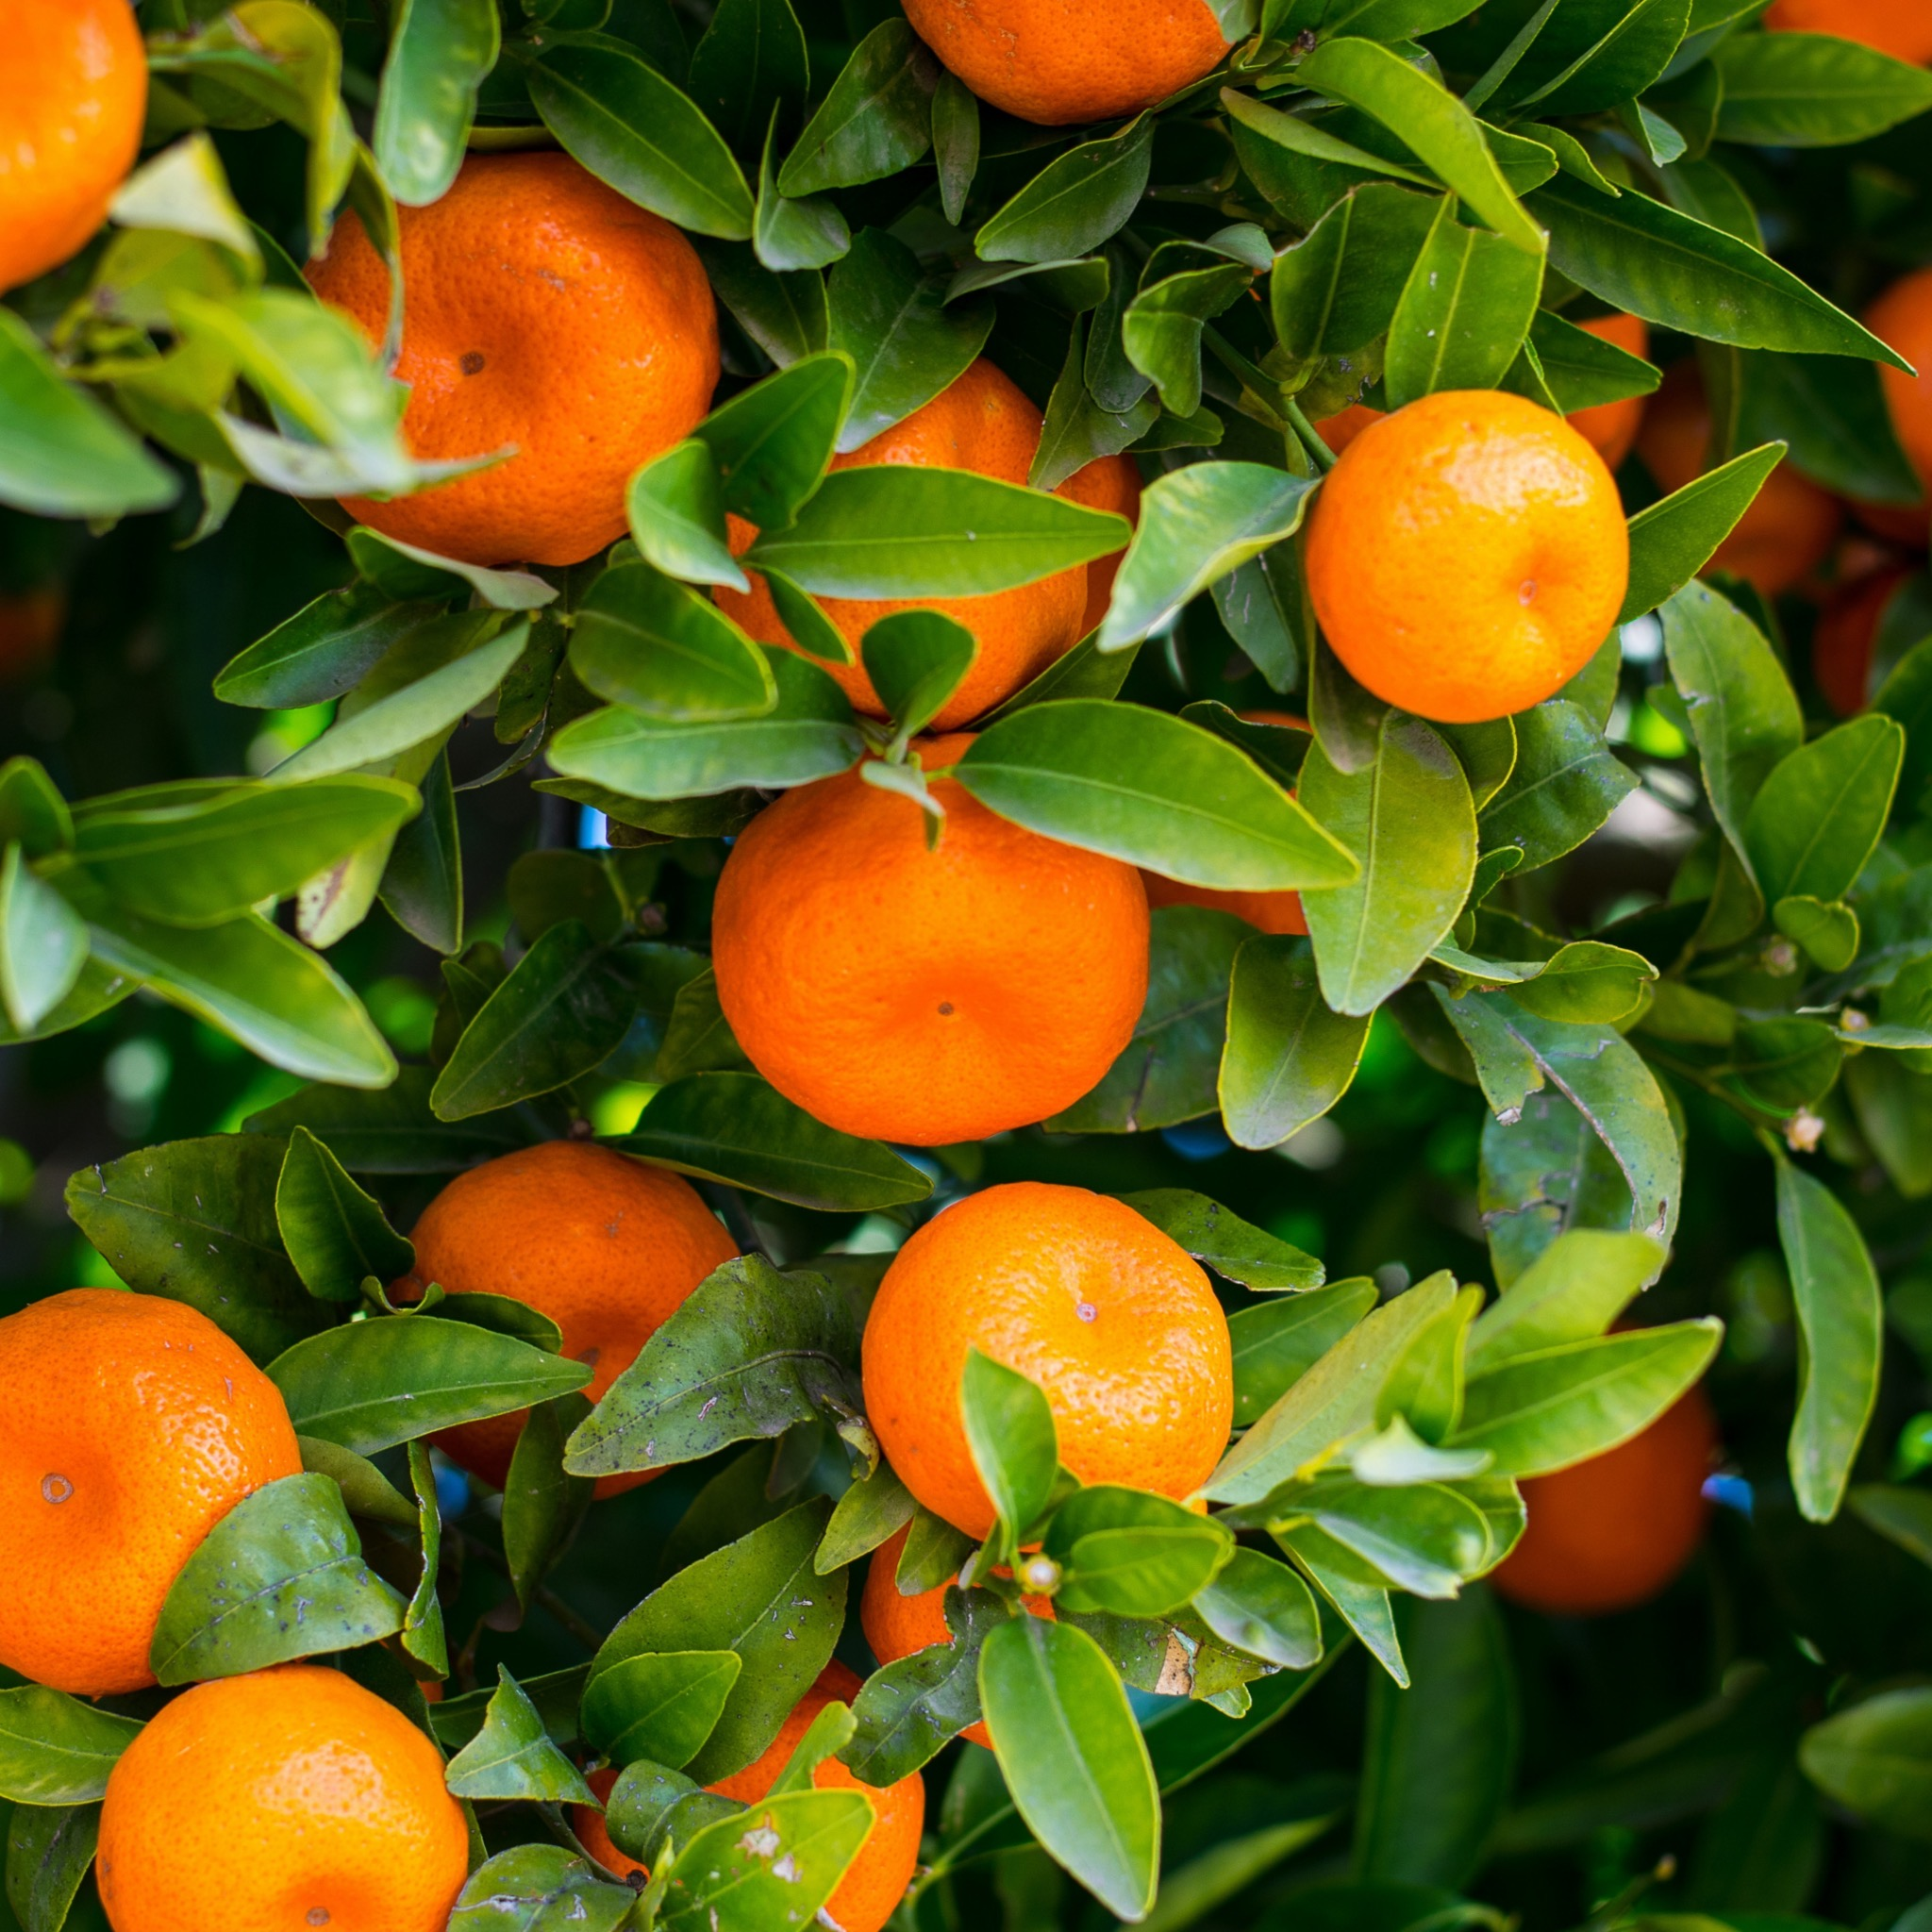 a close up of an orange tree with some ripe oranges on a tree